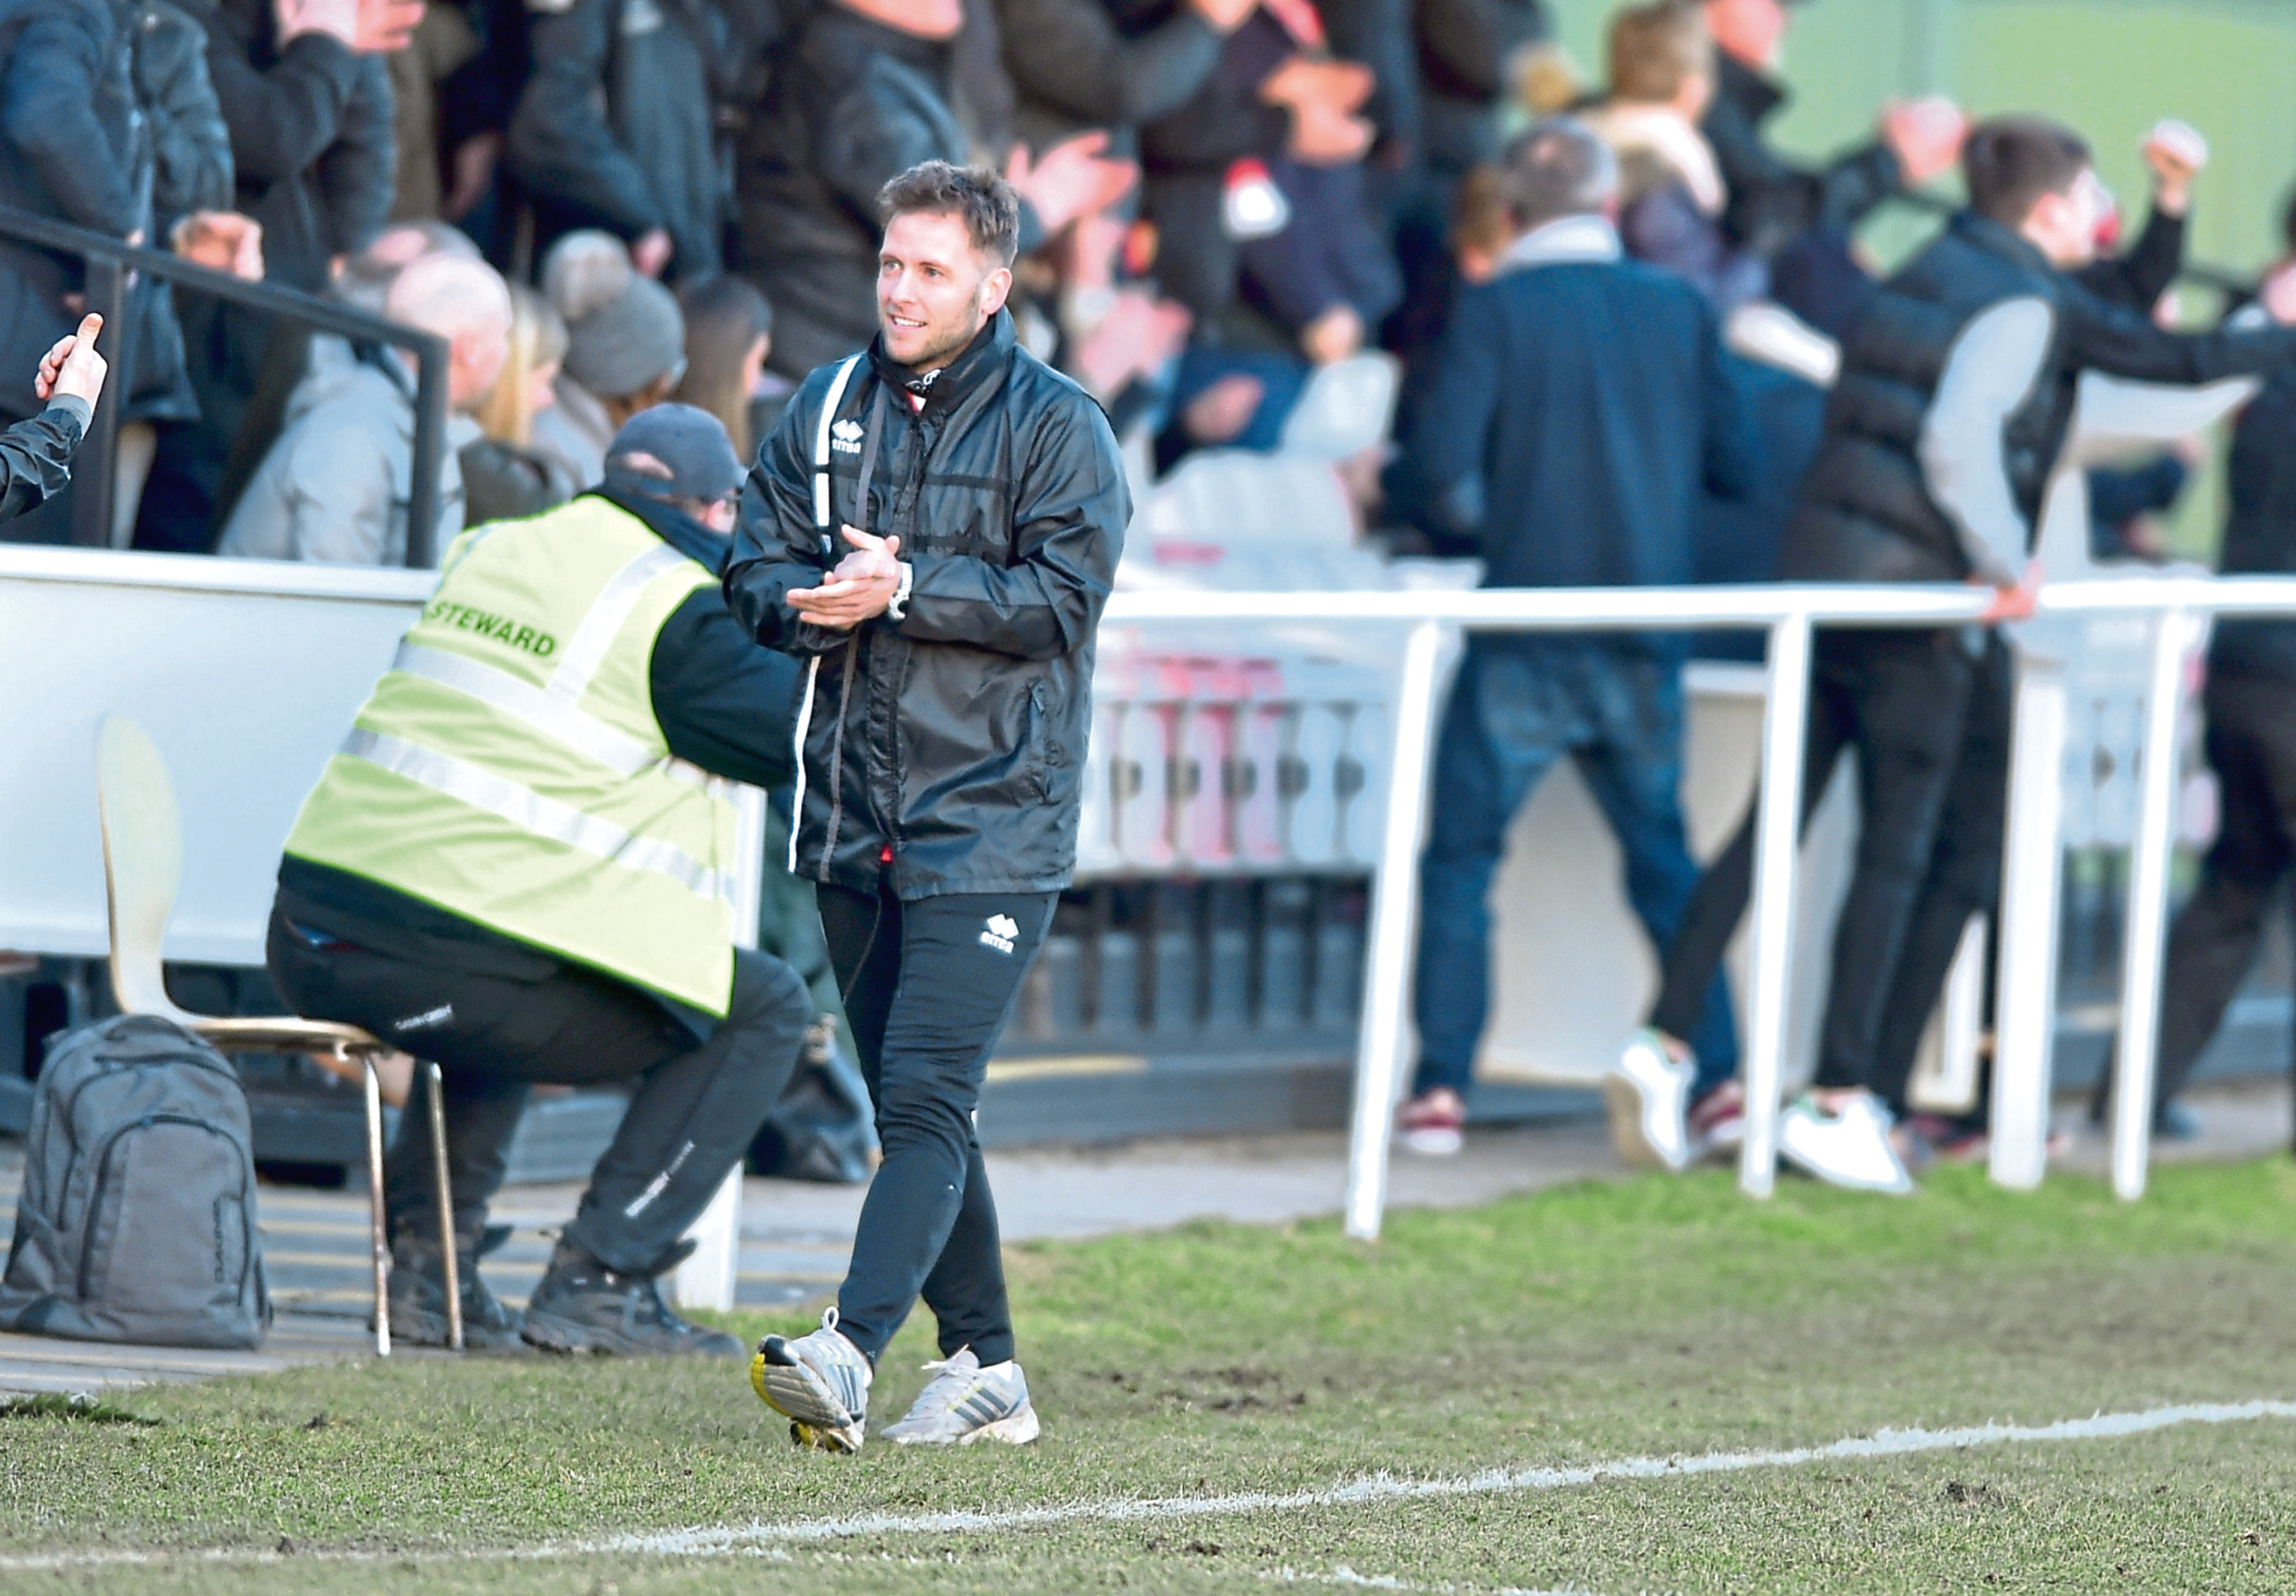 Formartine manager Paul Lawson is relishing the start of the campaign